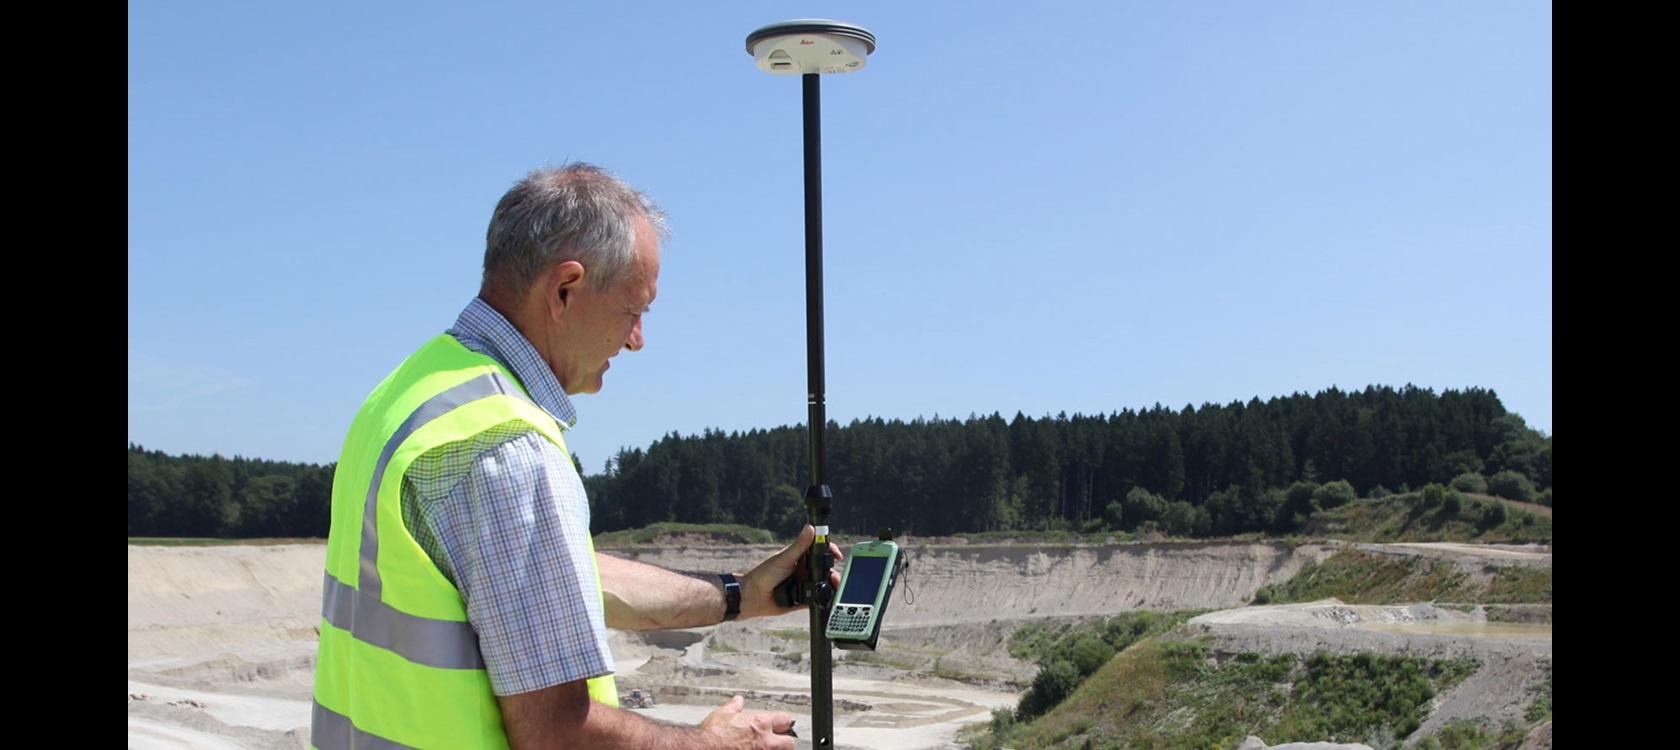 Leica Zeno GIS for the capture and management of Jordans electrical assets